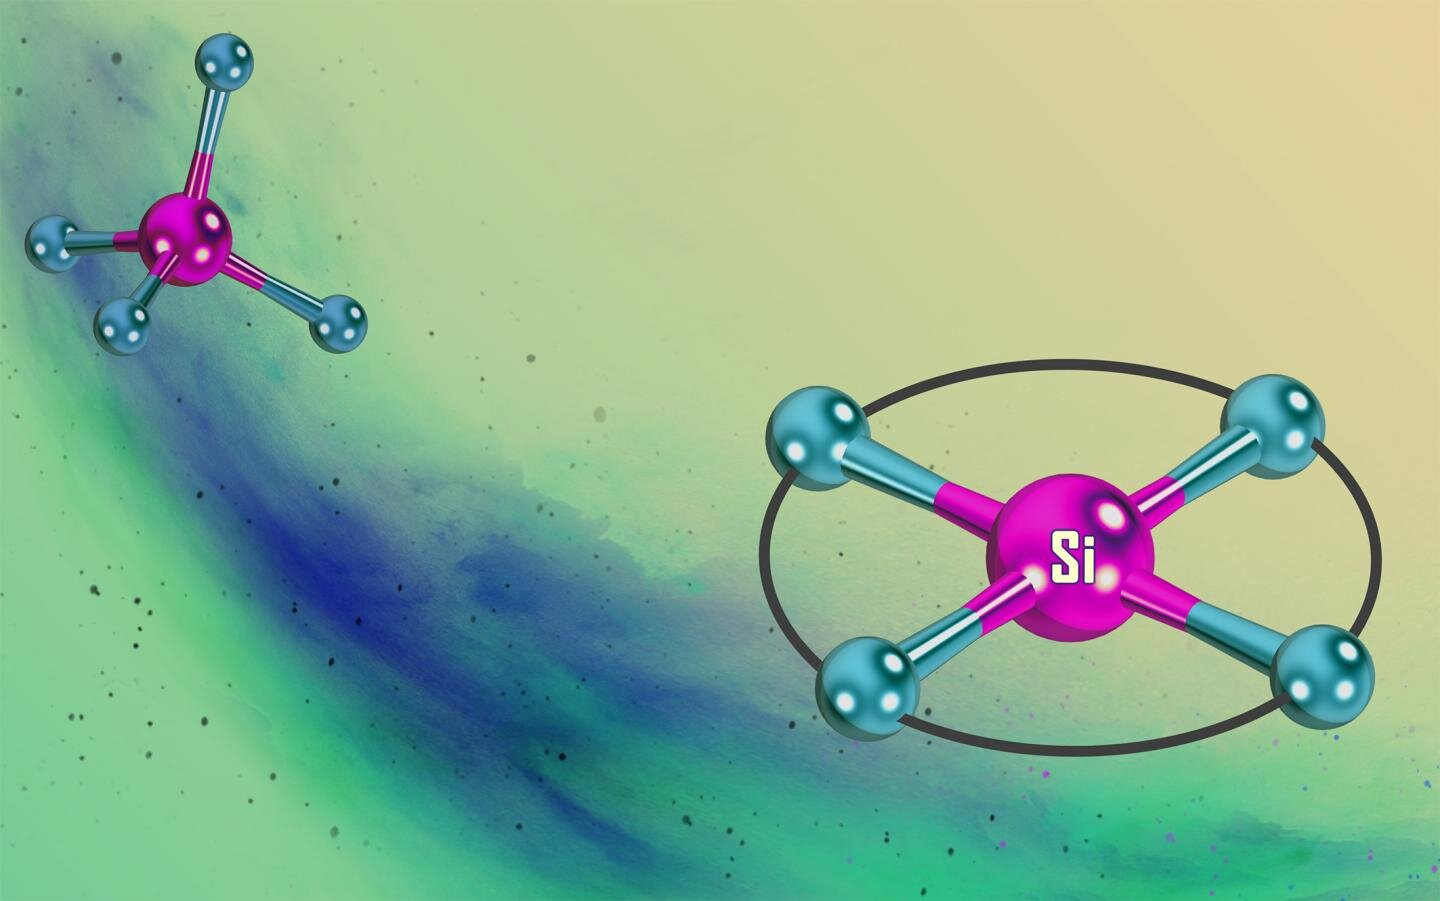 Silicon with a two-dimensional structure